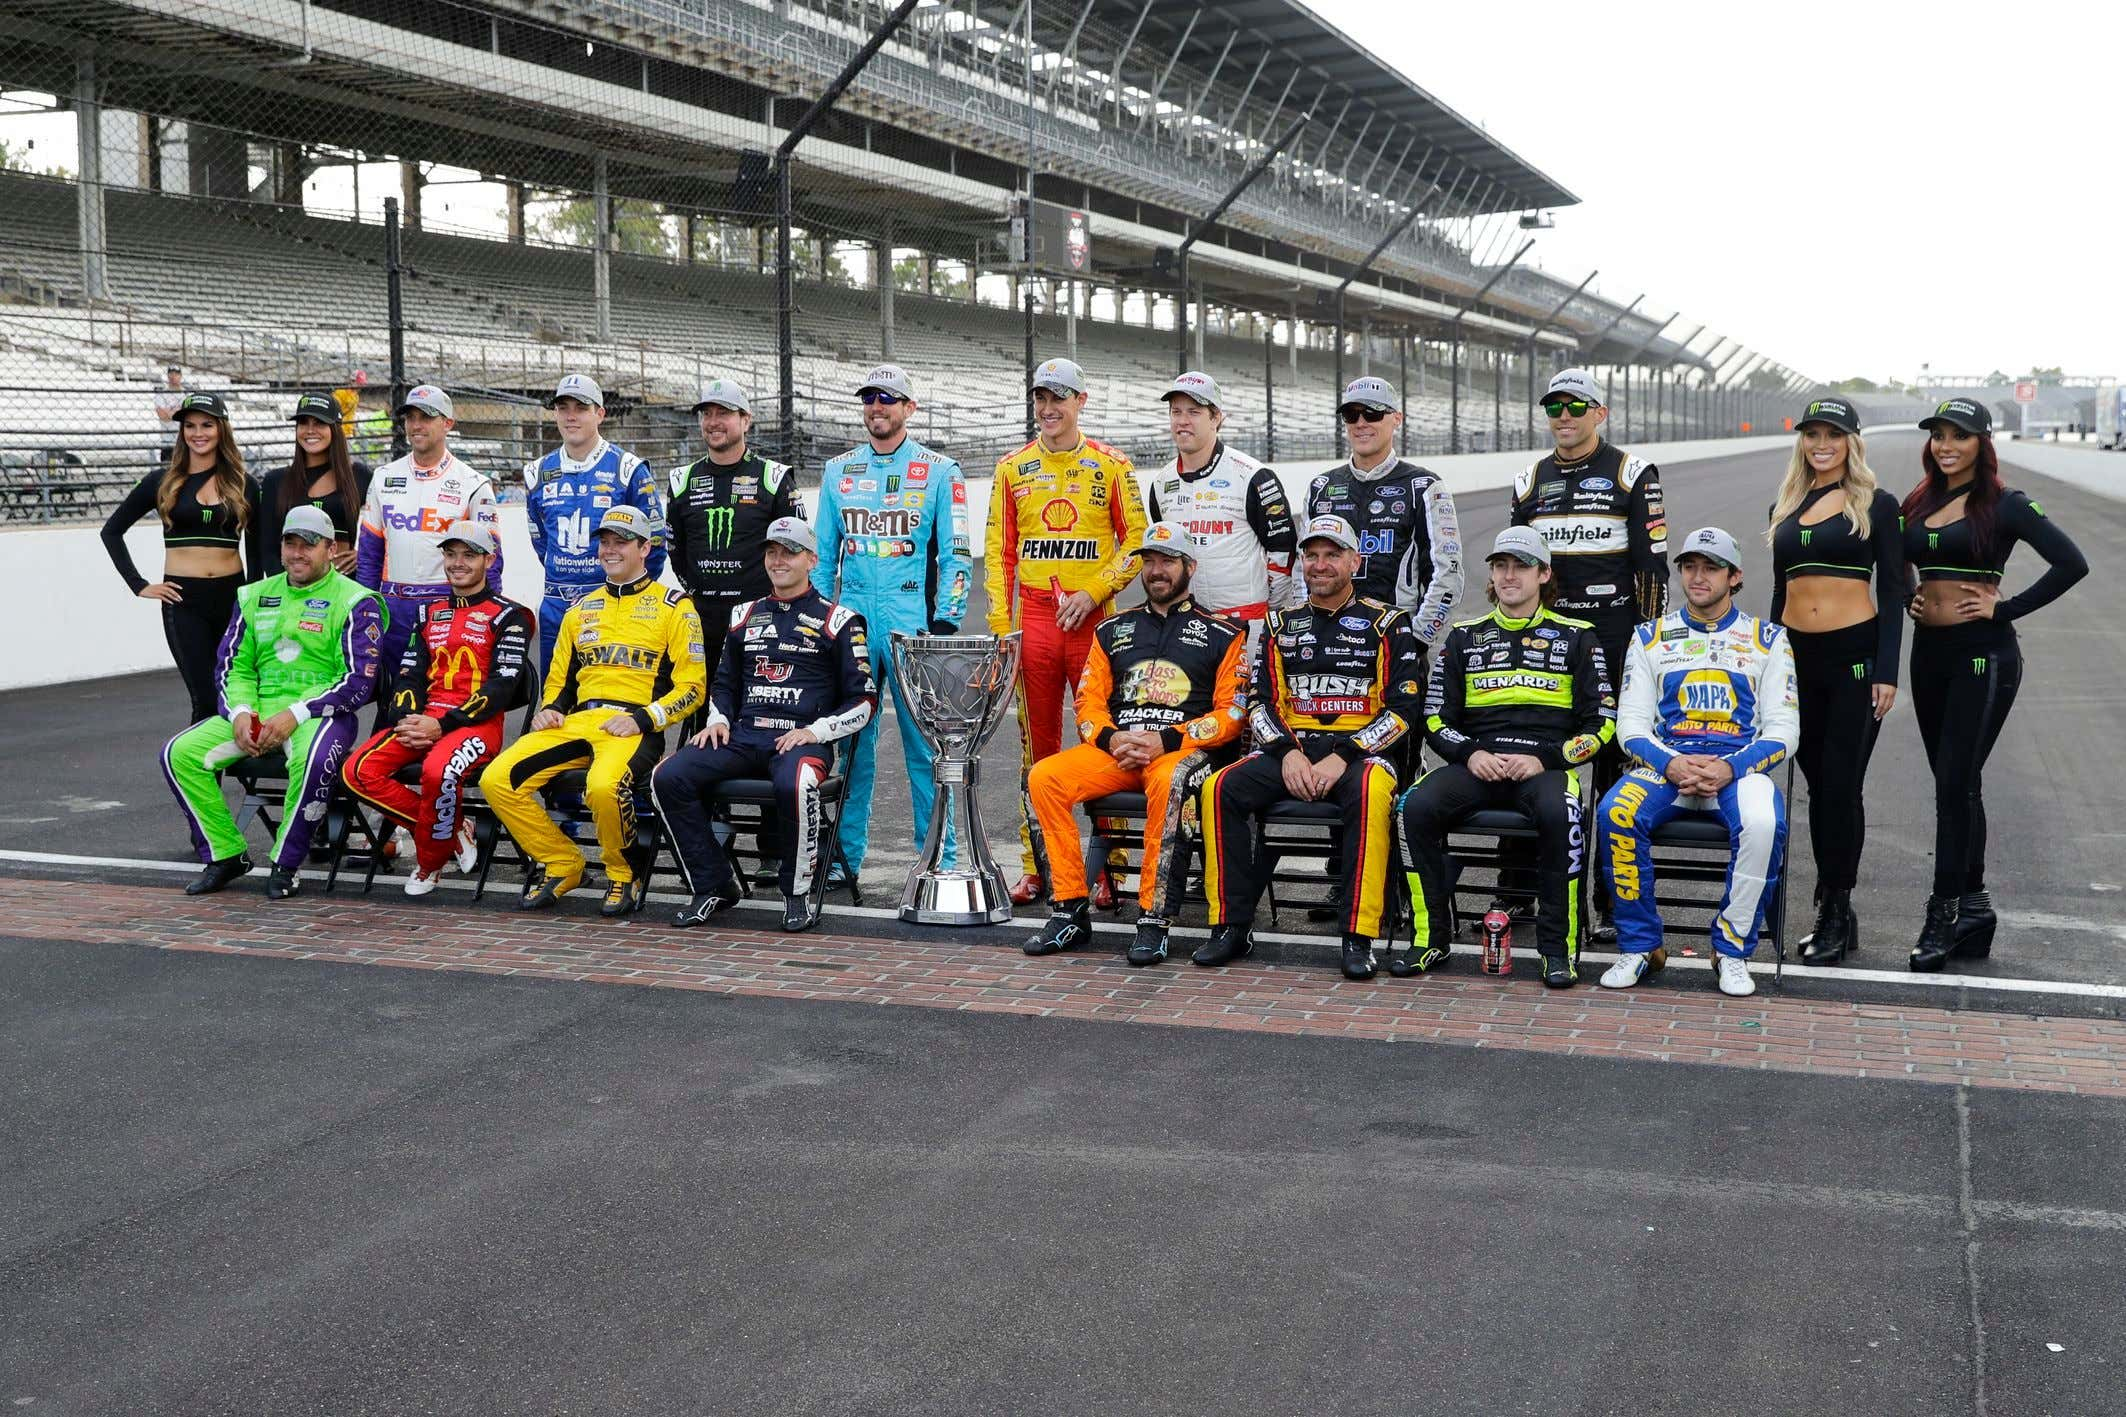 Drivers who qualified the NASCAR Cup Series playoff pose on the the start/finish line following the Brickyard 400 auto race at Indianapolis Motor Speedway, in Indianapolis